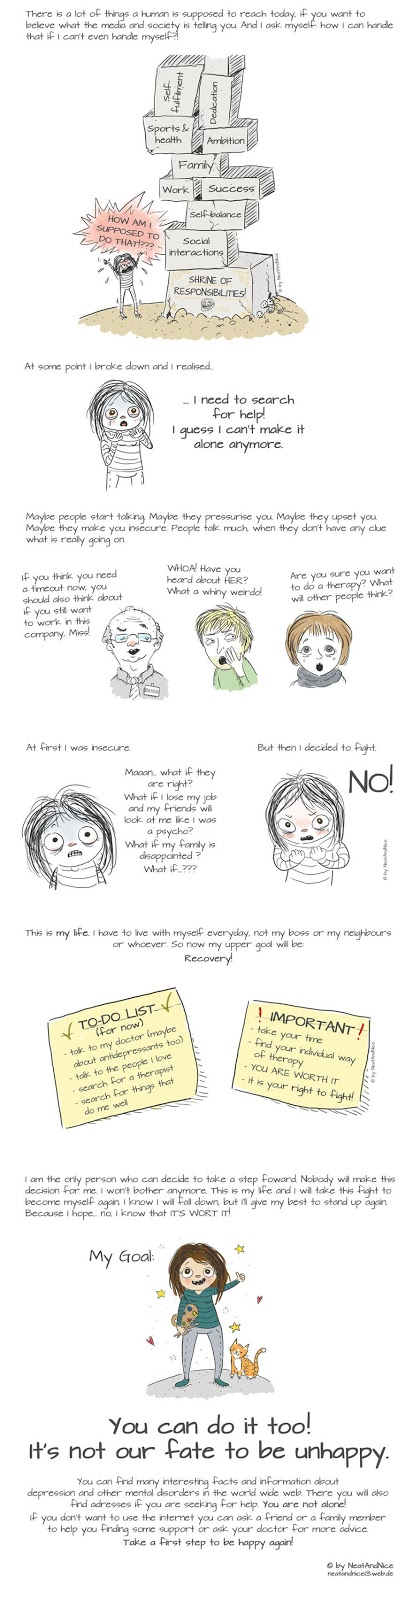 I Created This Infographic About Depression To Show You're Not Alone